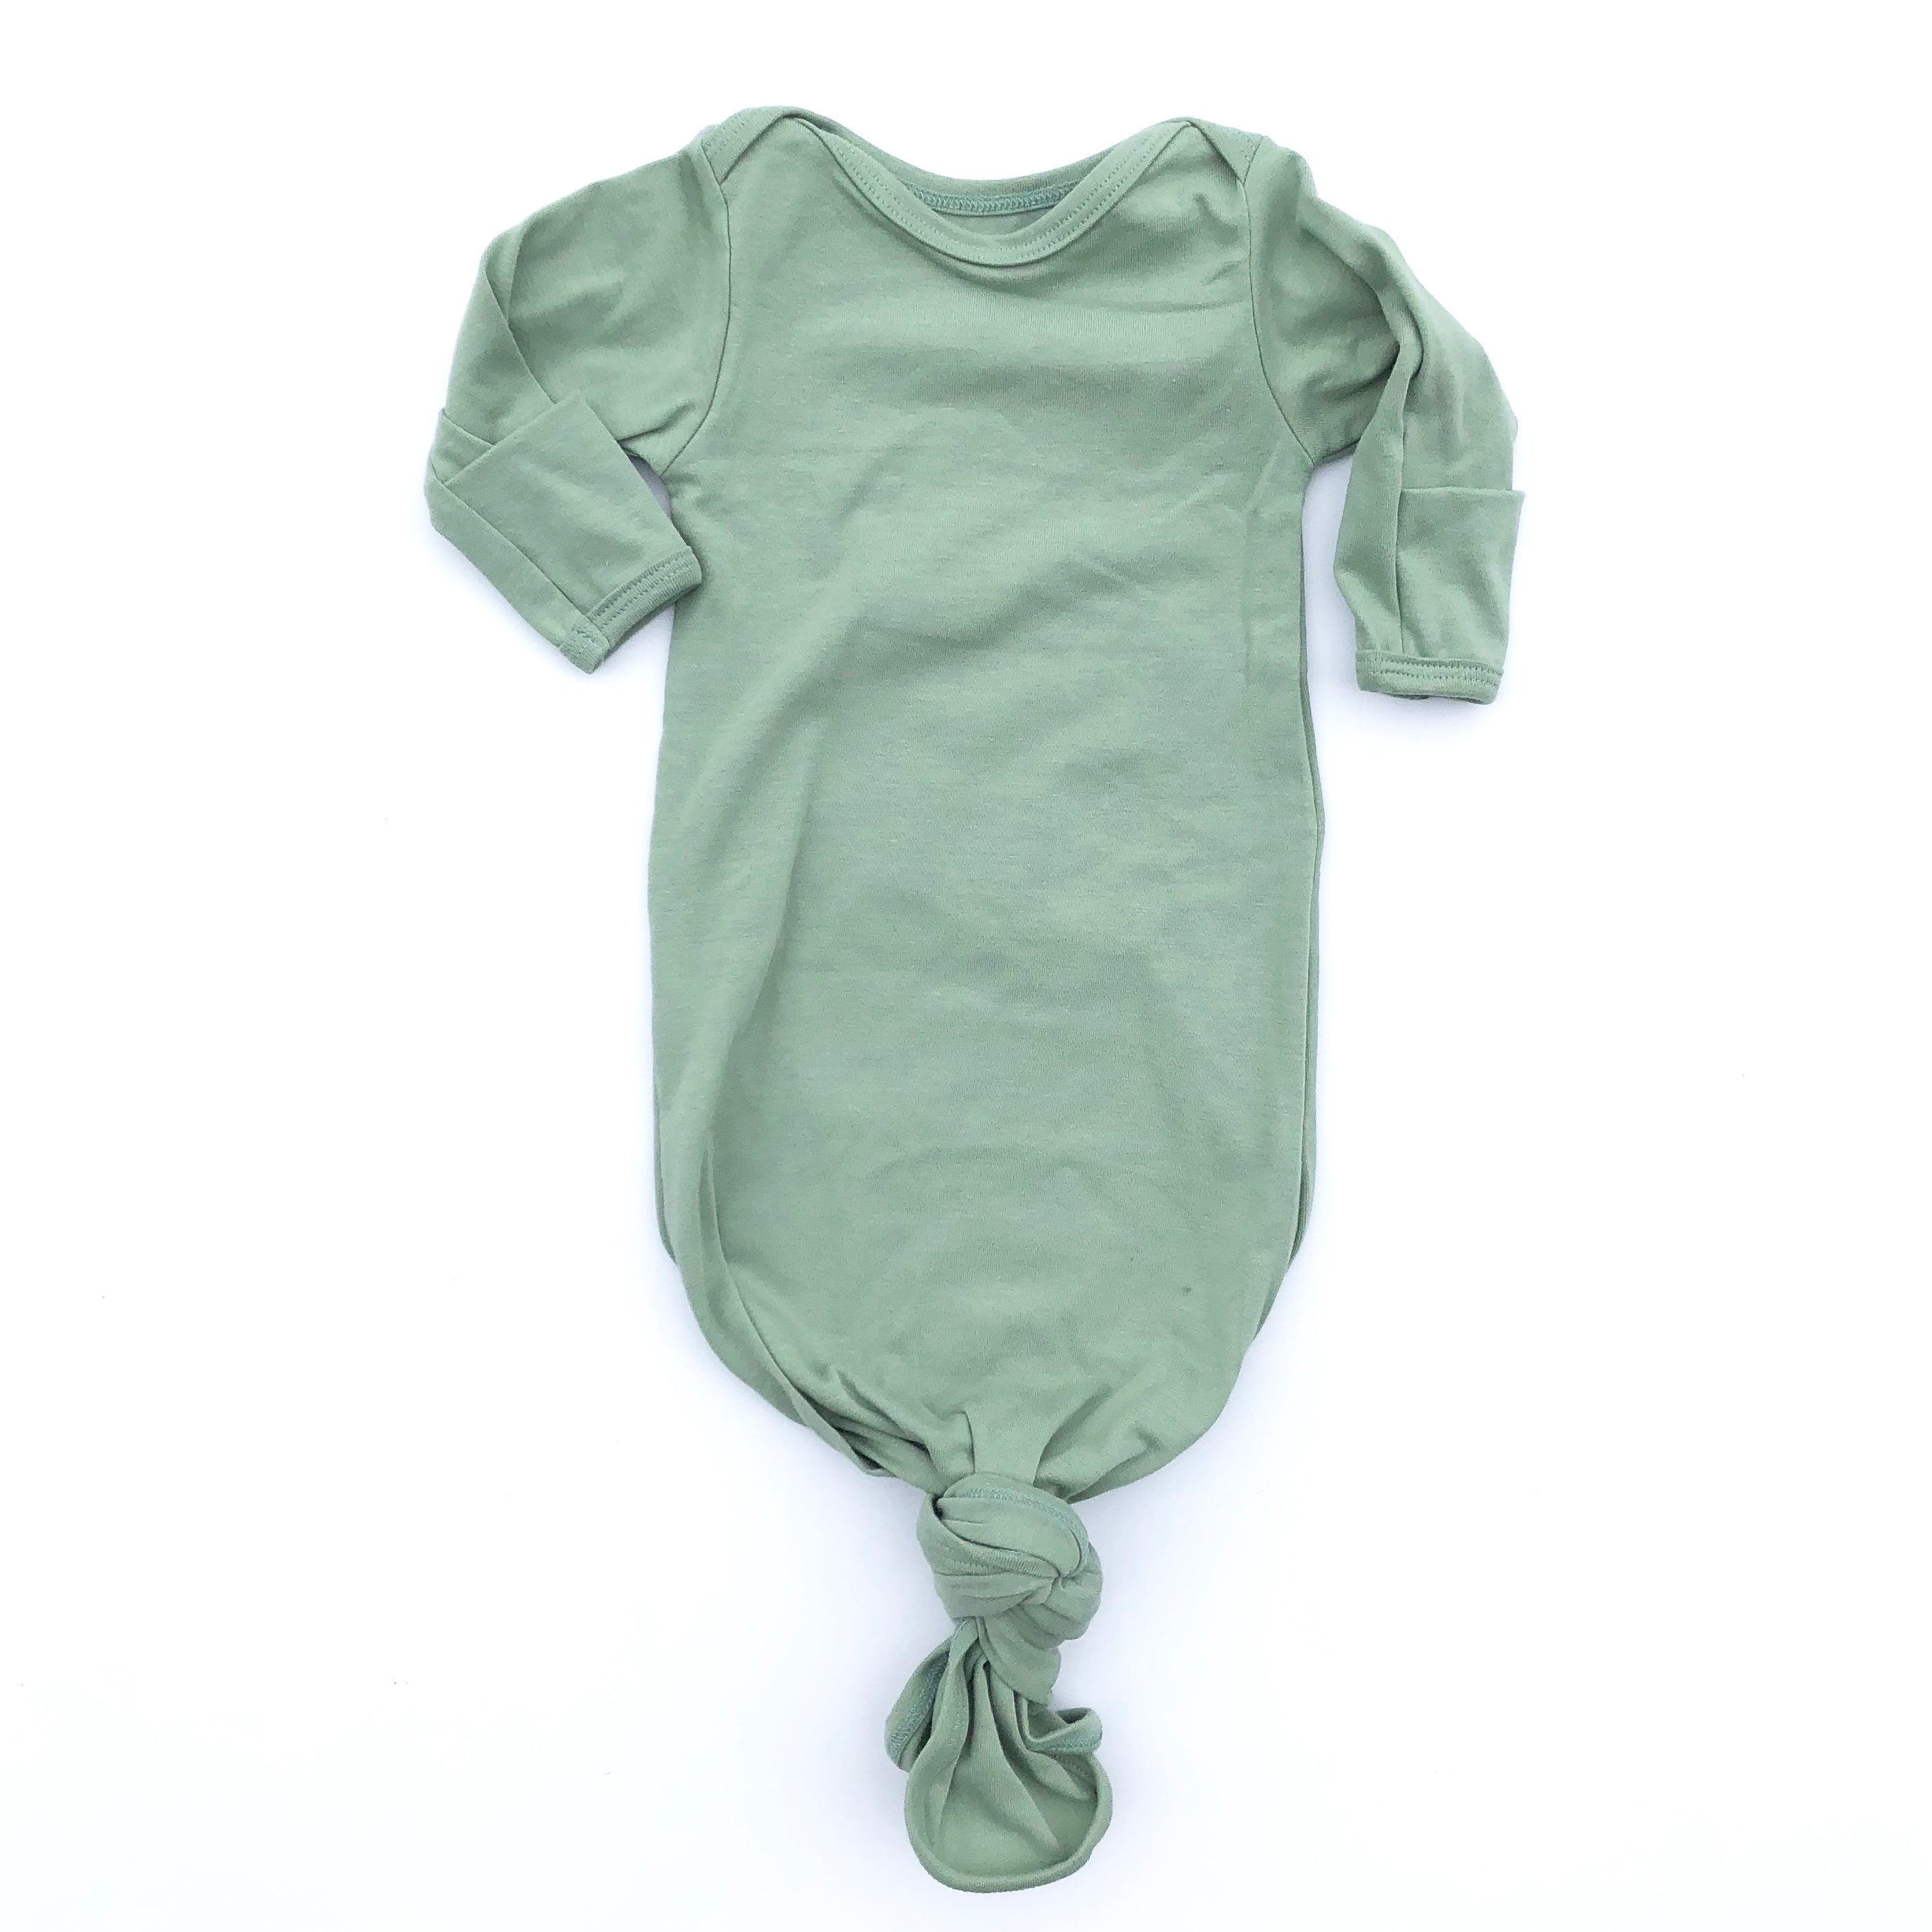 Dark Sage Knotted Bottom Baby Layette Gown - Oh So Vera